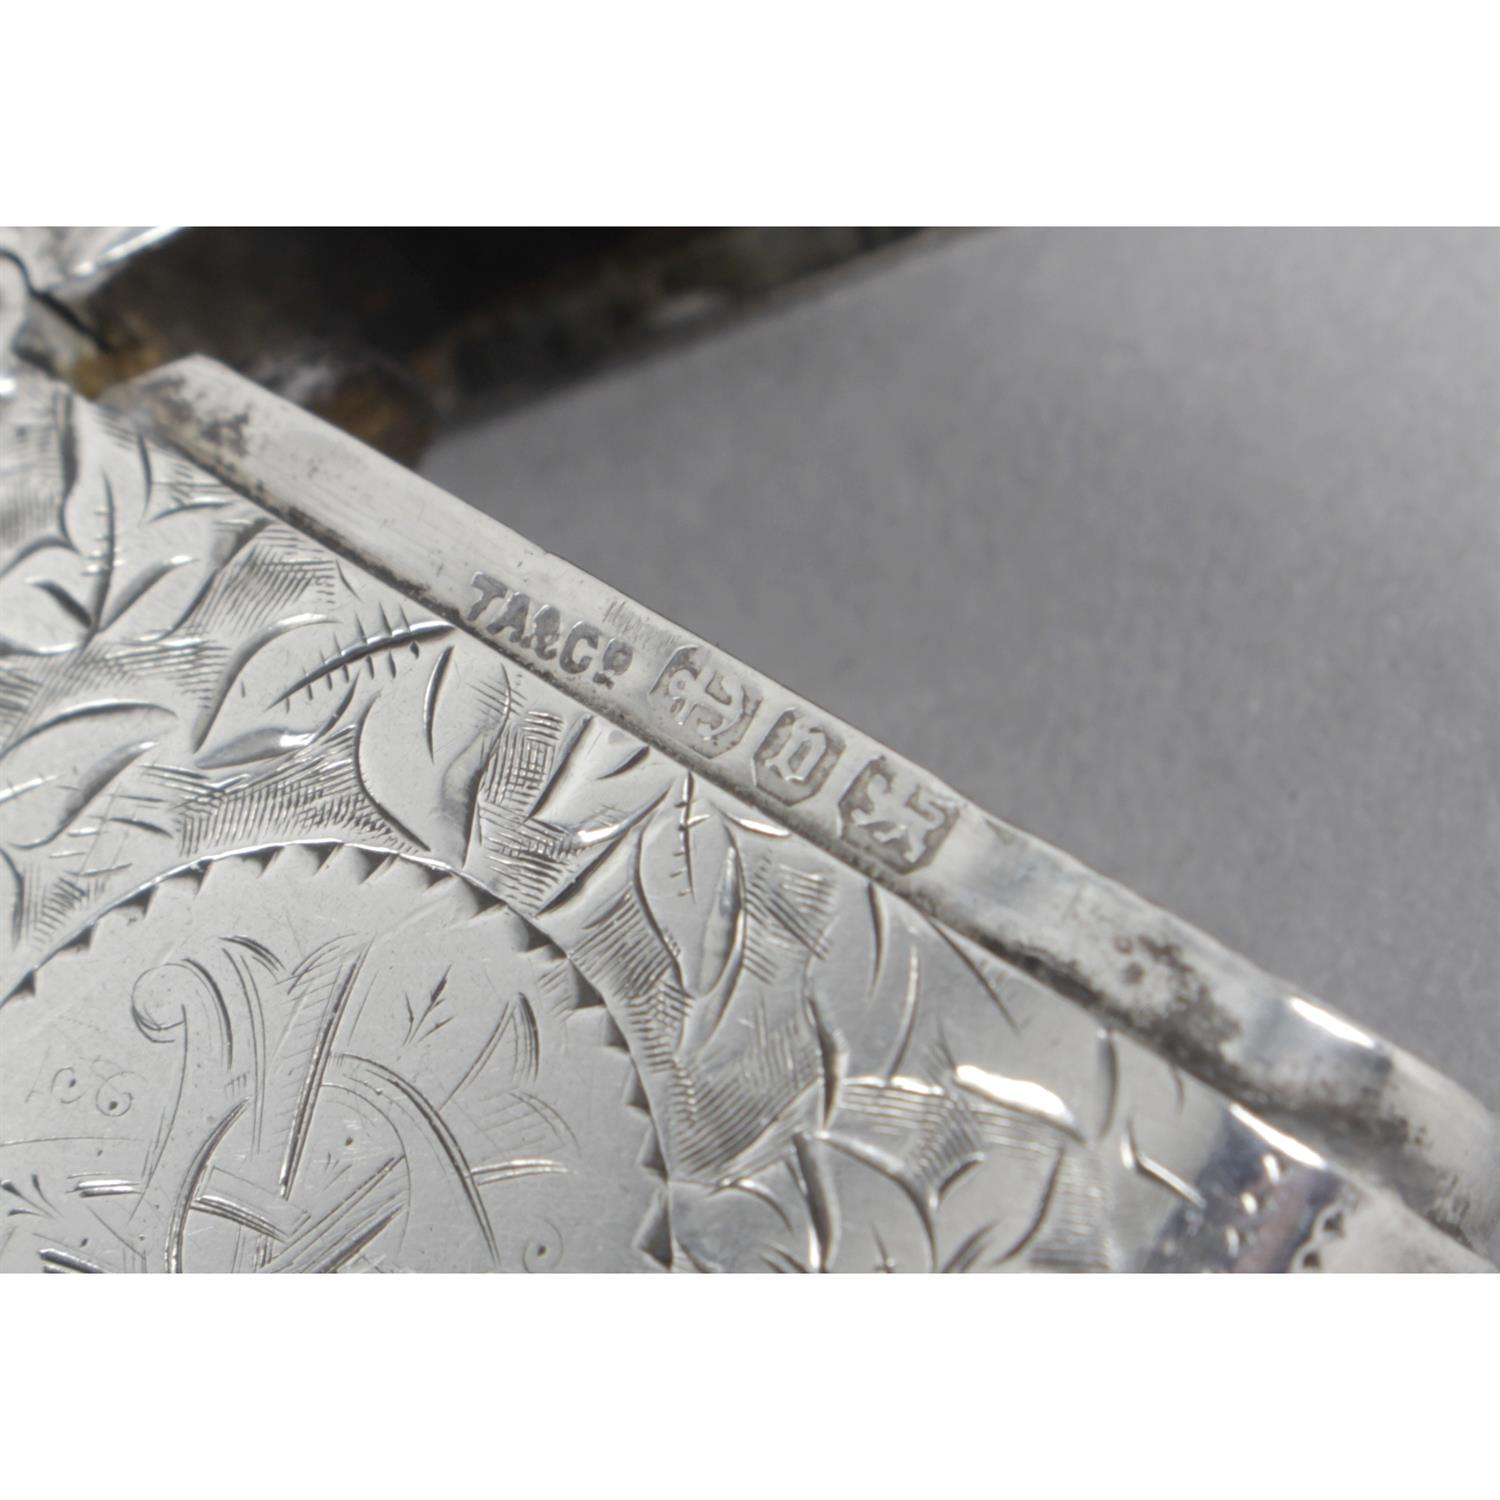 Three late Victorian silver vesta cases, with floral and foliate engraving. (3). - Image 4 of 4